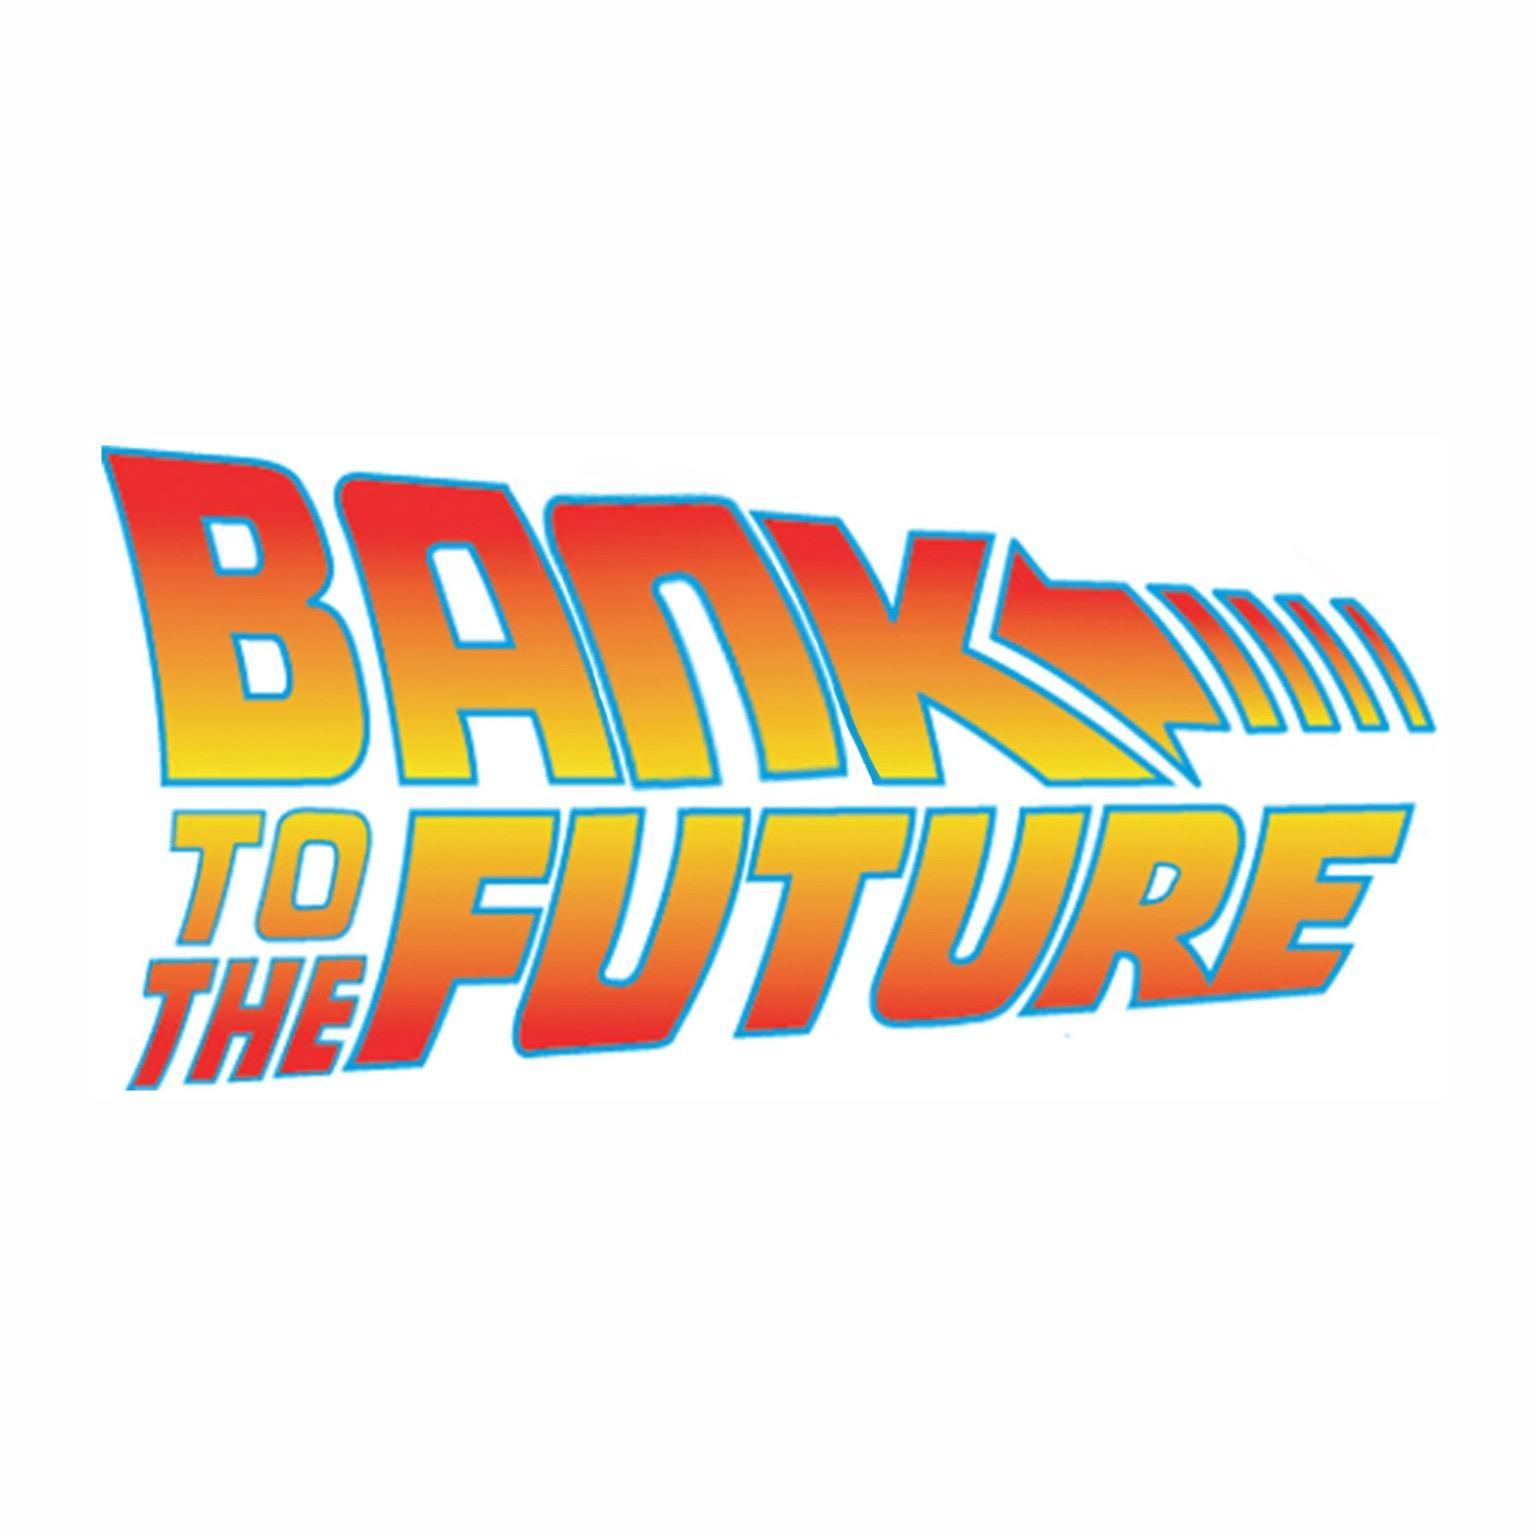 the future of bank As technology infiltrates every aspect of life, kpmg predicts that by 2030 mass market retail banks will be largely invisible to consumers.